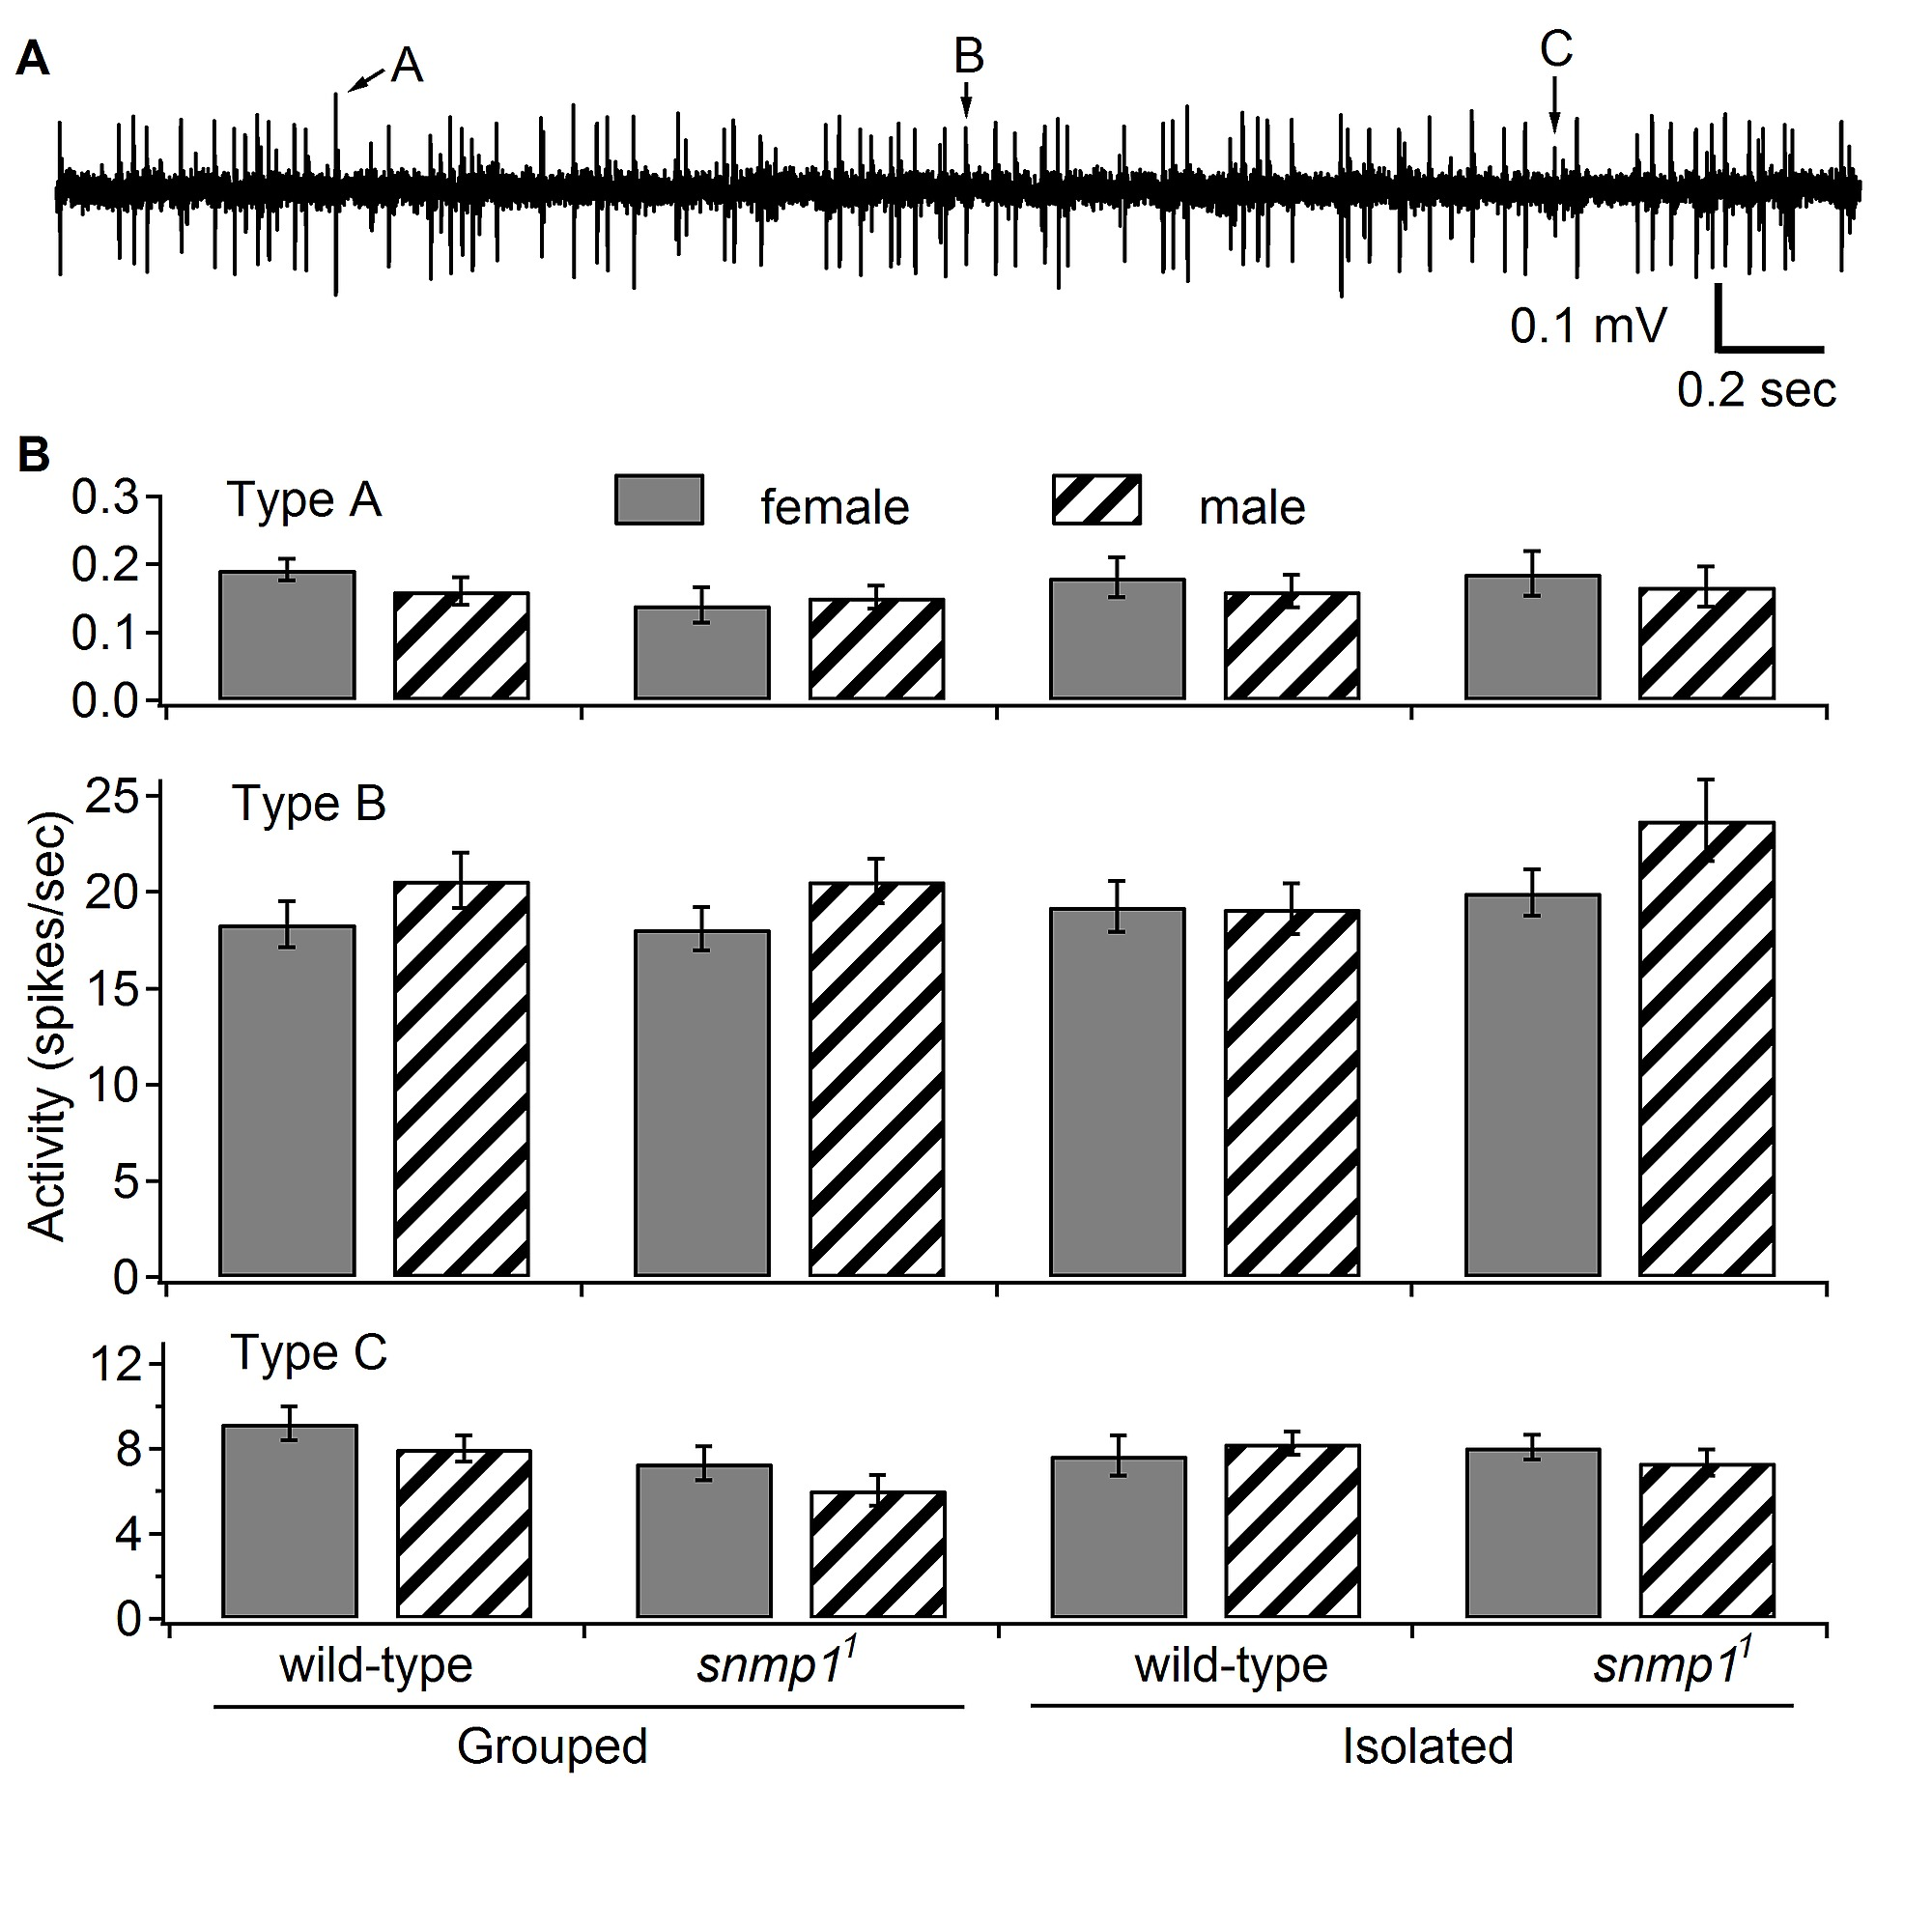 Requirement For Drosophila Snmp1 Rapid Activation And Fig 512 A Class B Circuit Constant Voltage Push Figure S1